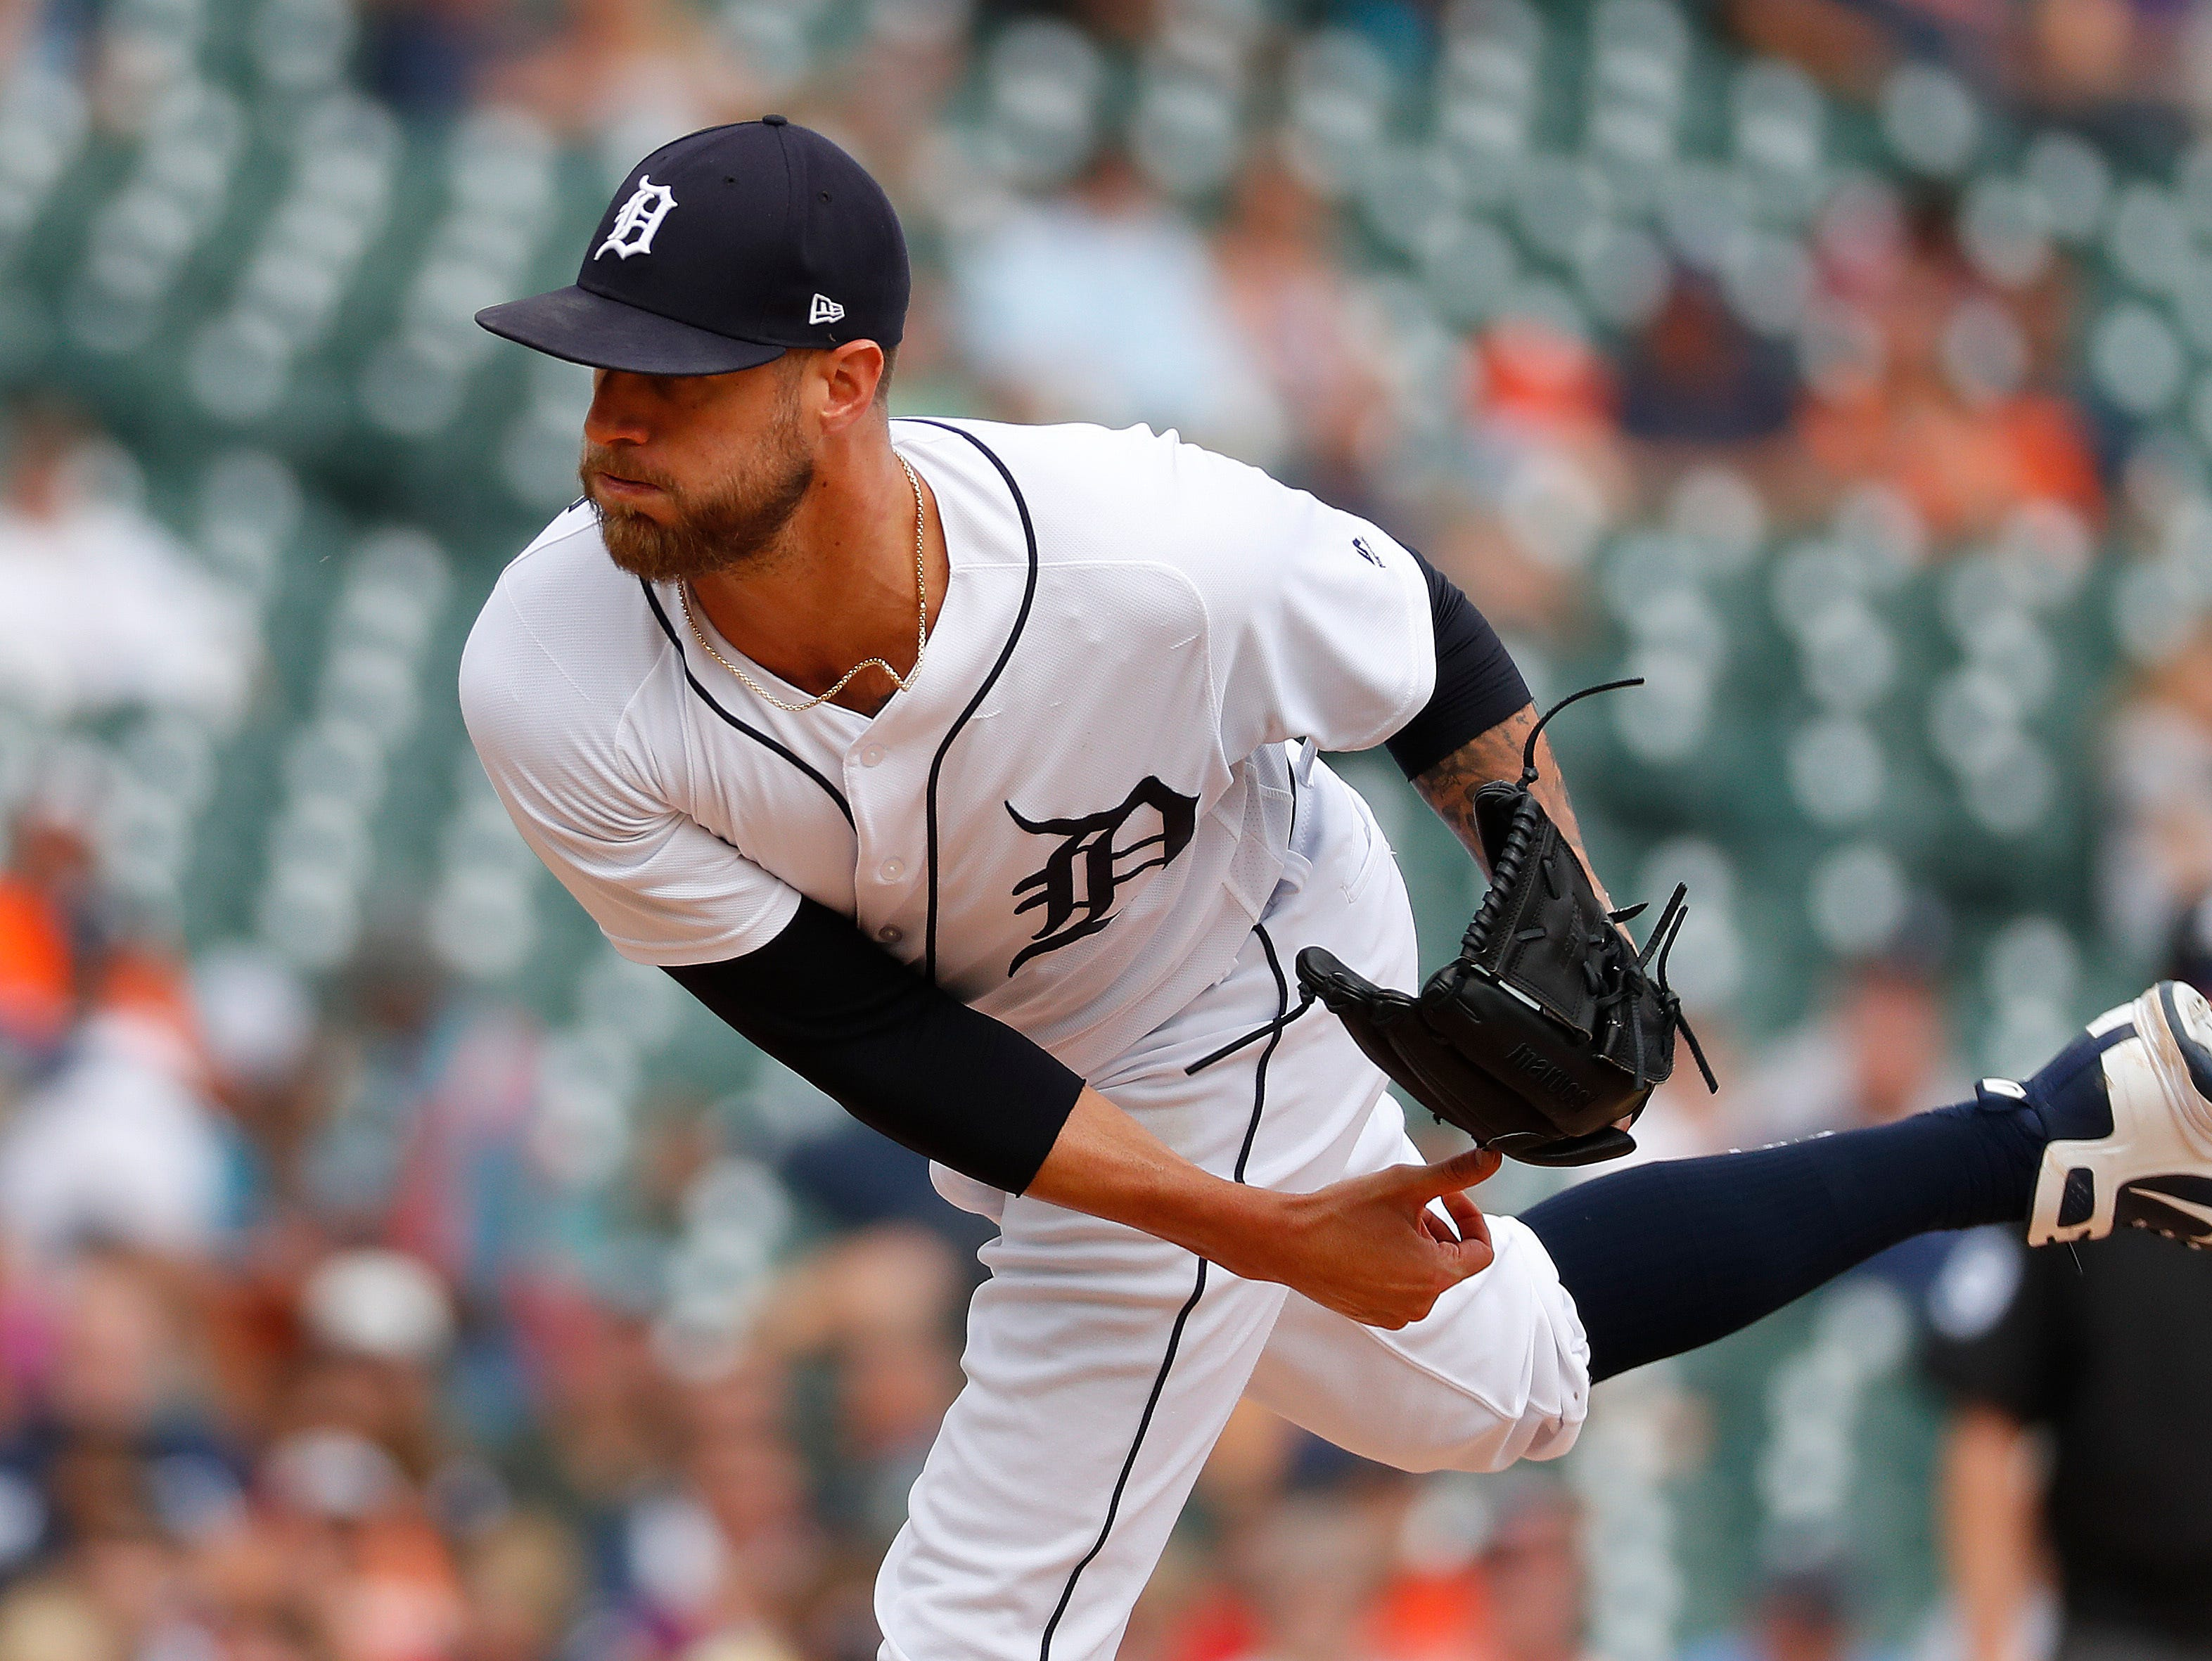 Tigers relief pitcher Shane Greene throws against the Cincinnati Reds in the ninth inning.